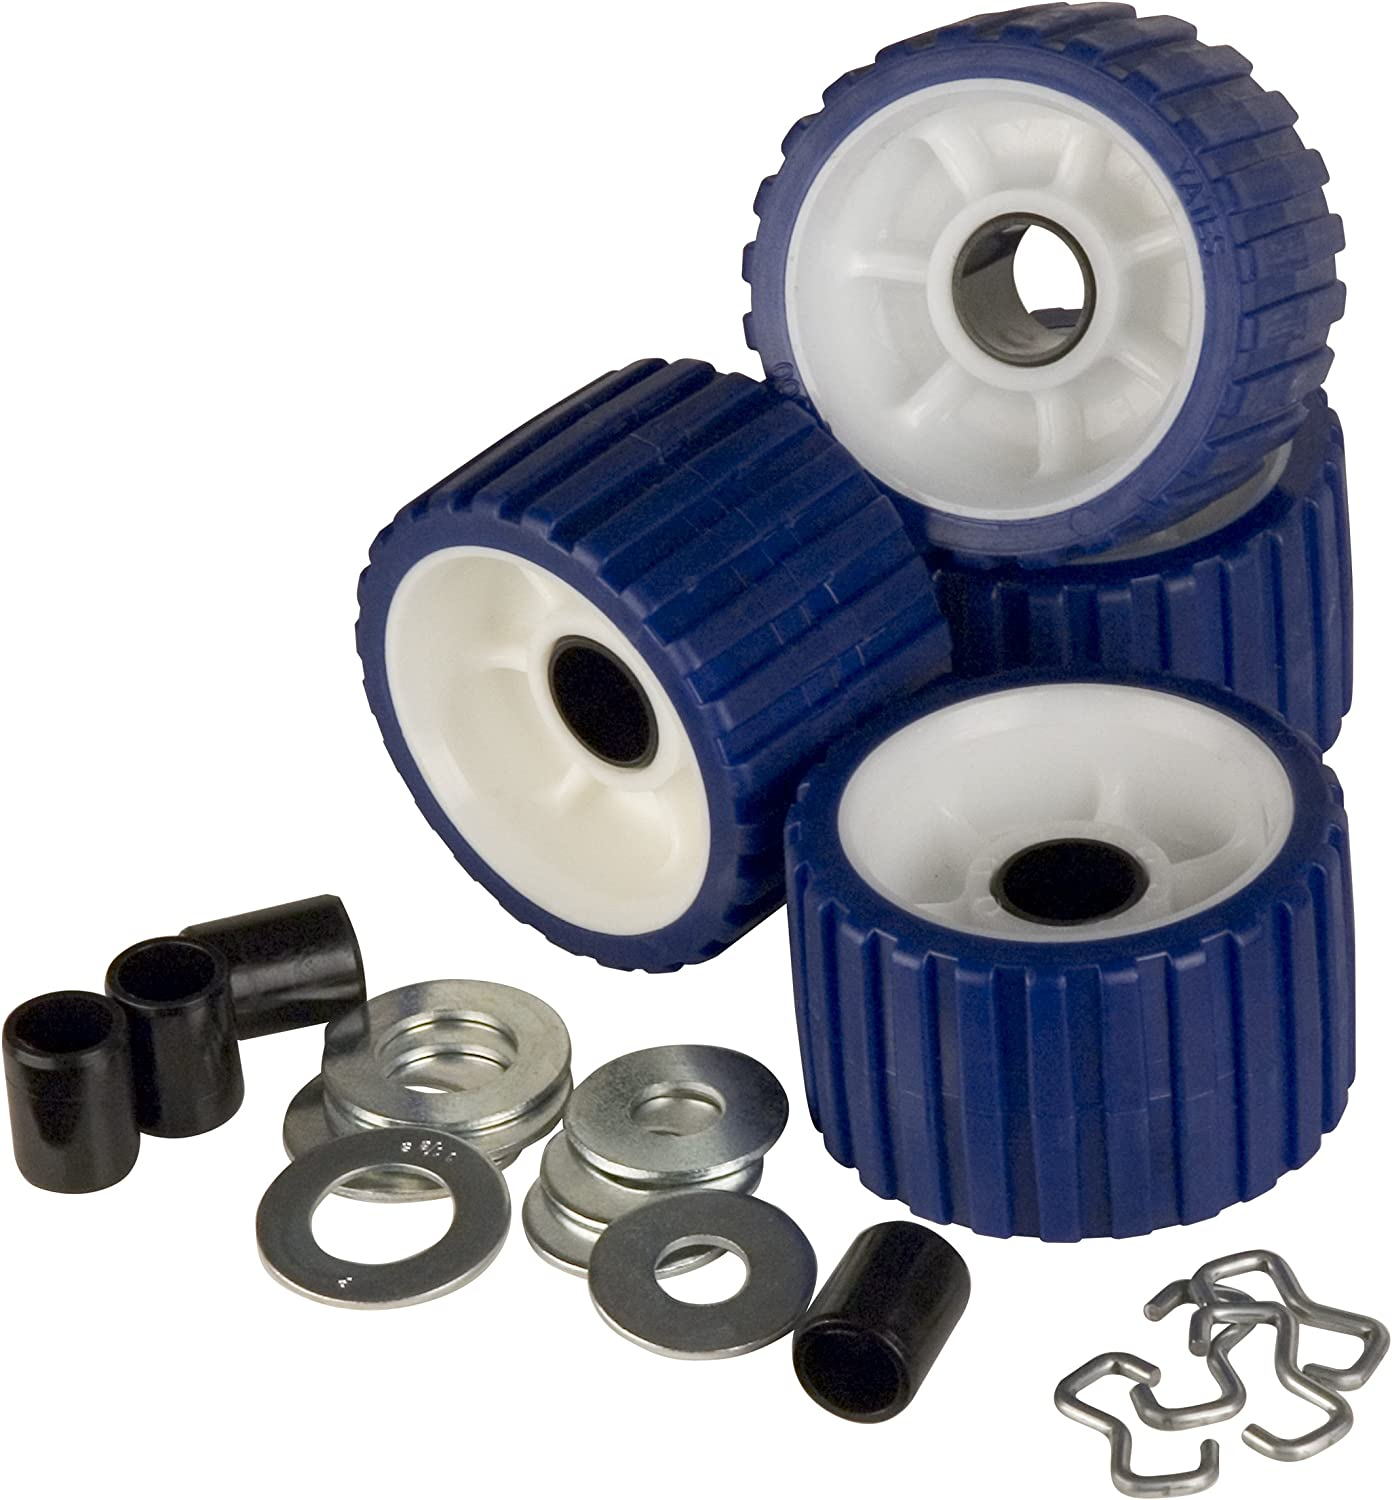 CE Smith Trailer 29320 Ribbed Roller Kit